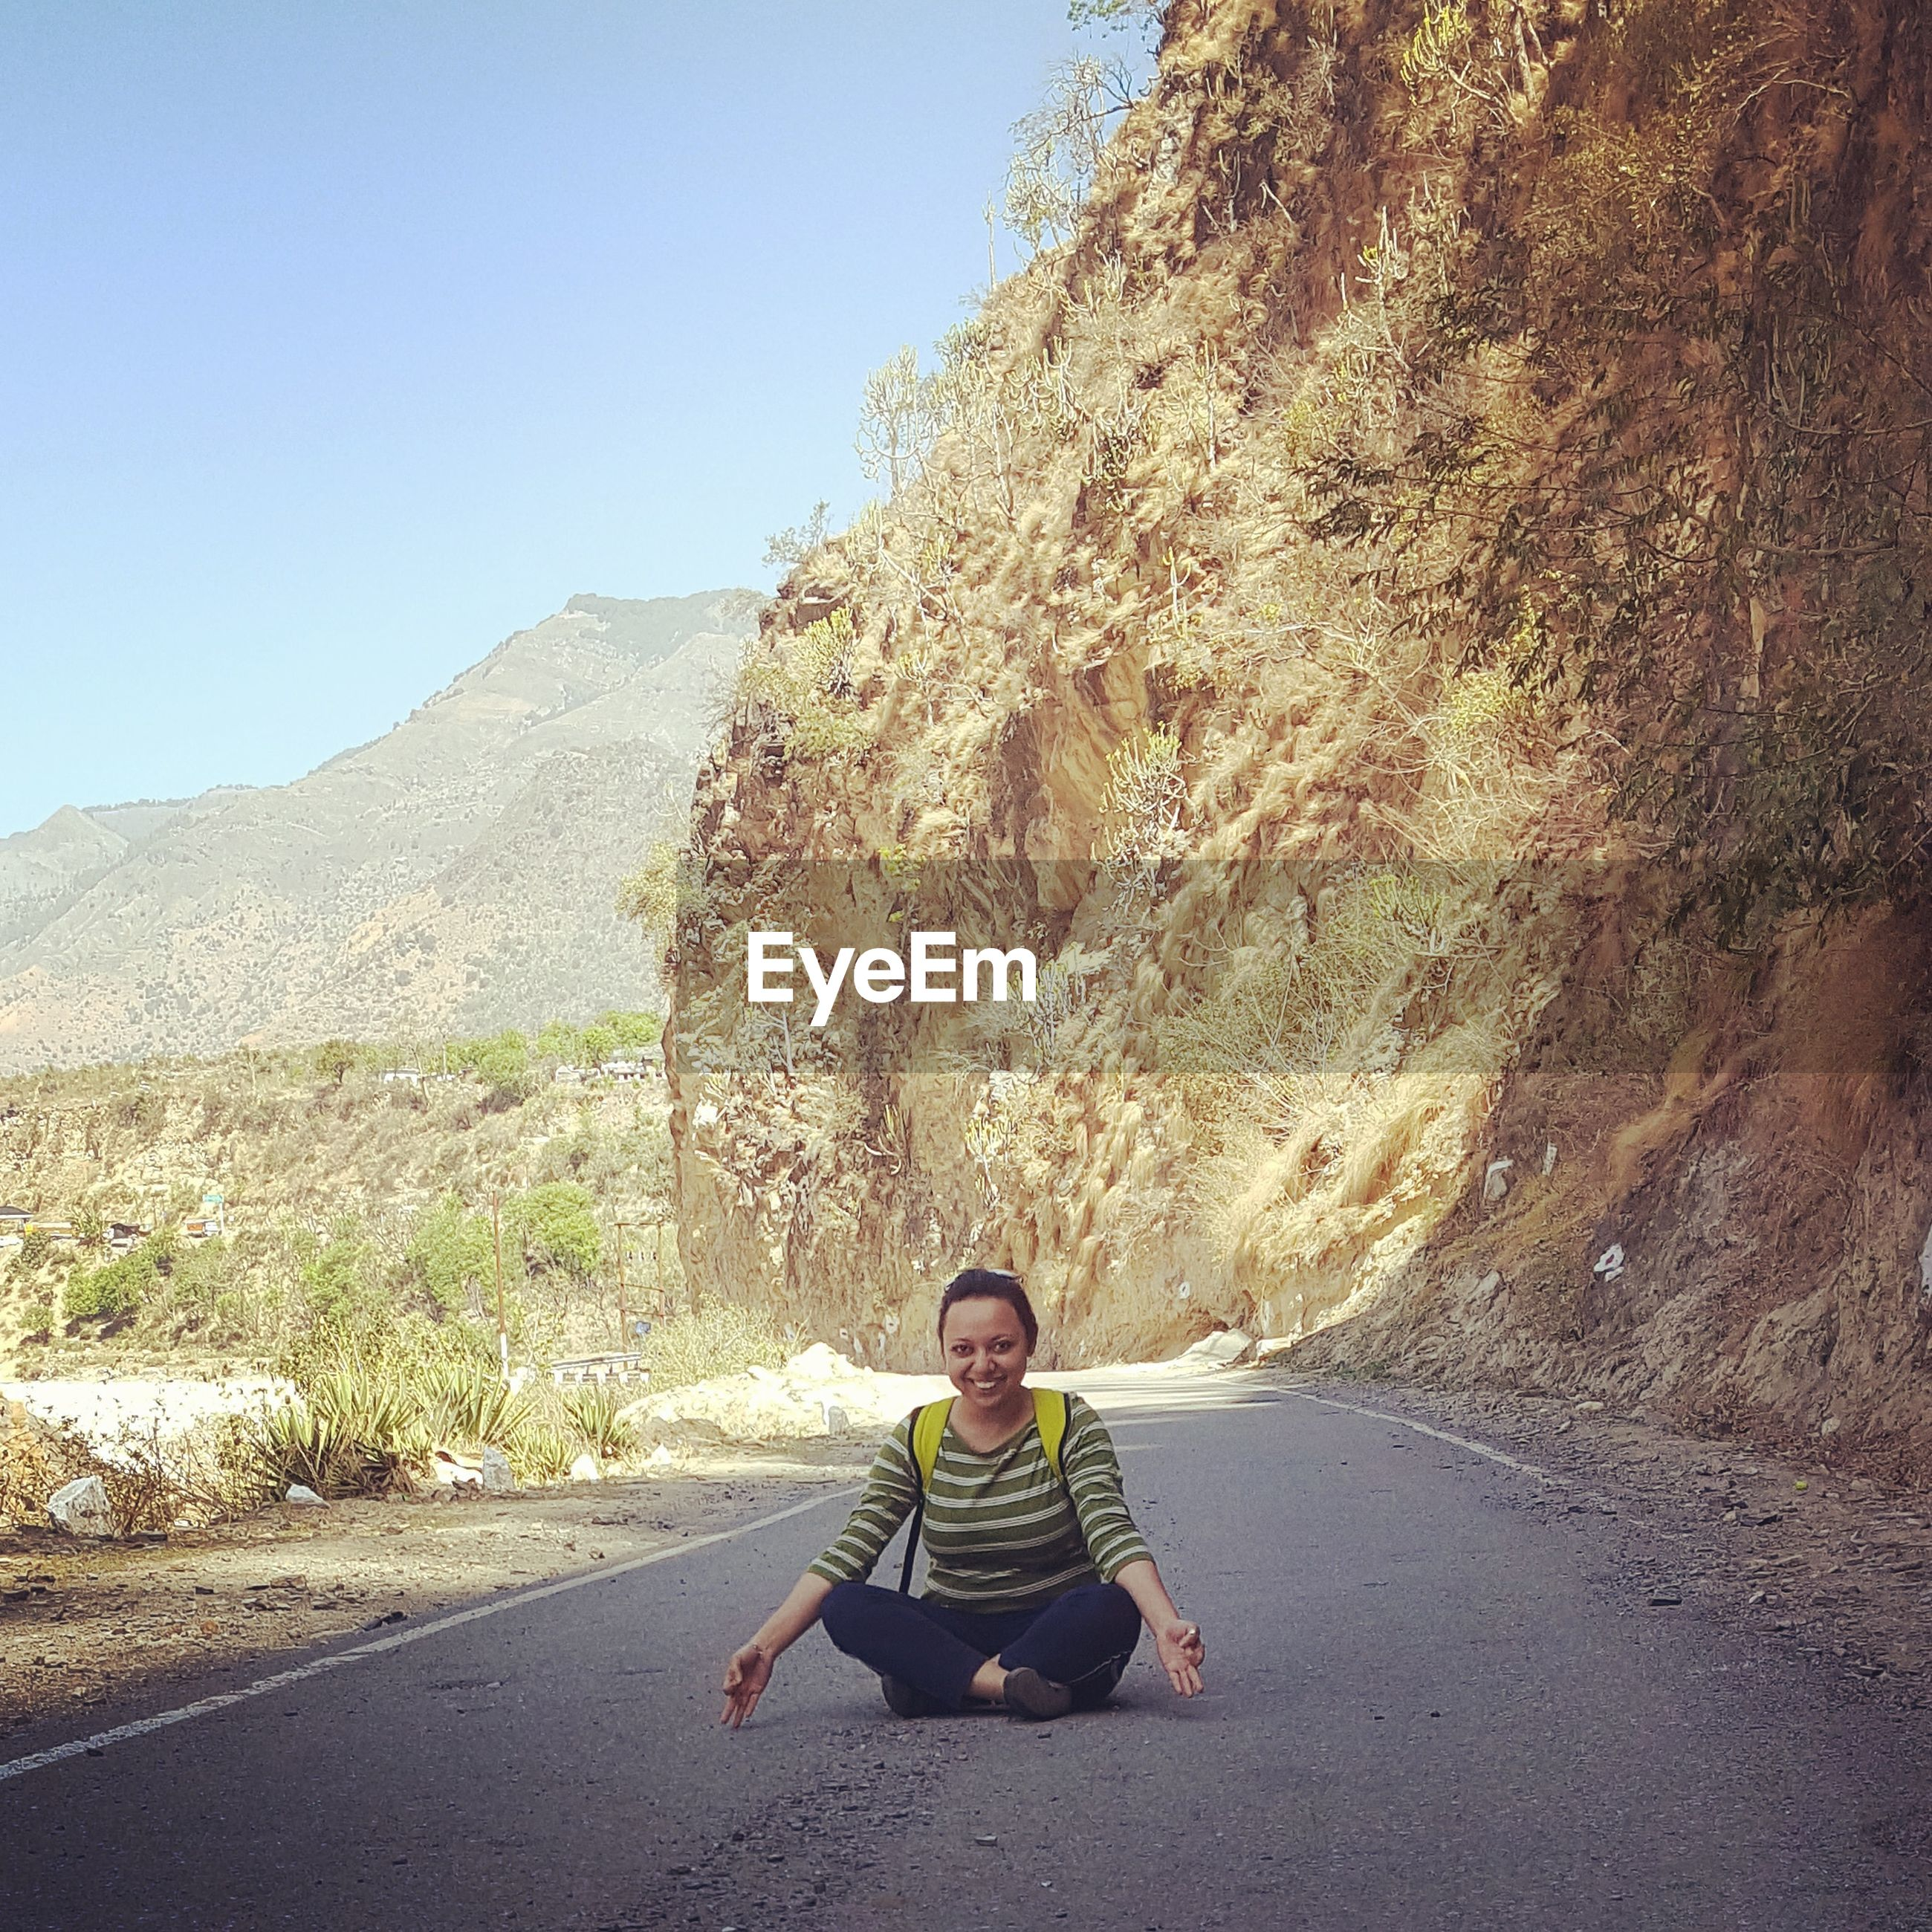 Portrait of smiling woman doing yoga on road against mountains